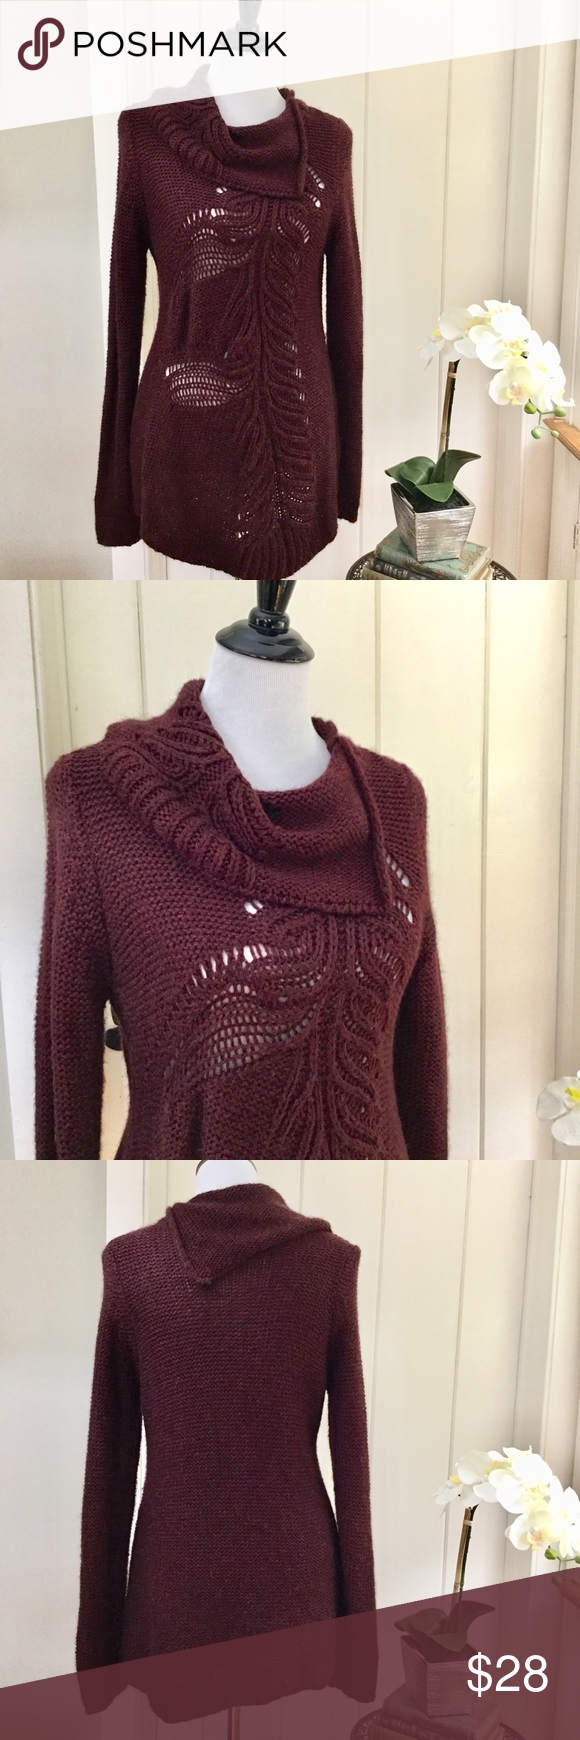 MOTH ANTHRO Woven Burgundy Cowl Neck Sweater | Deep burgundy, Open ...